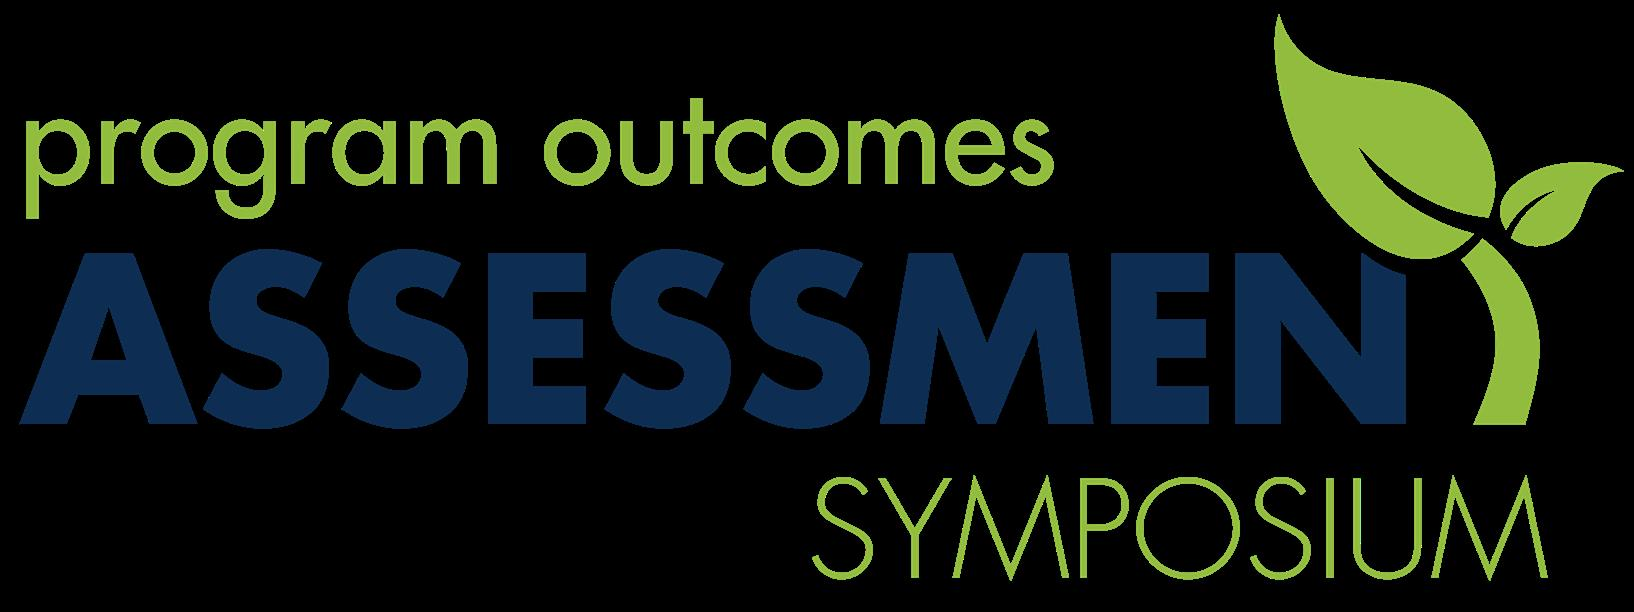 2018 Program Outcomes Assessment Symposium